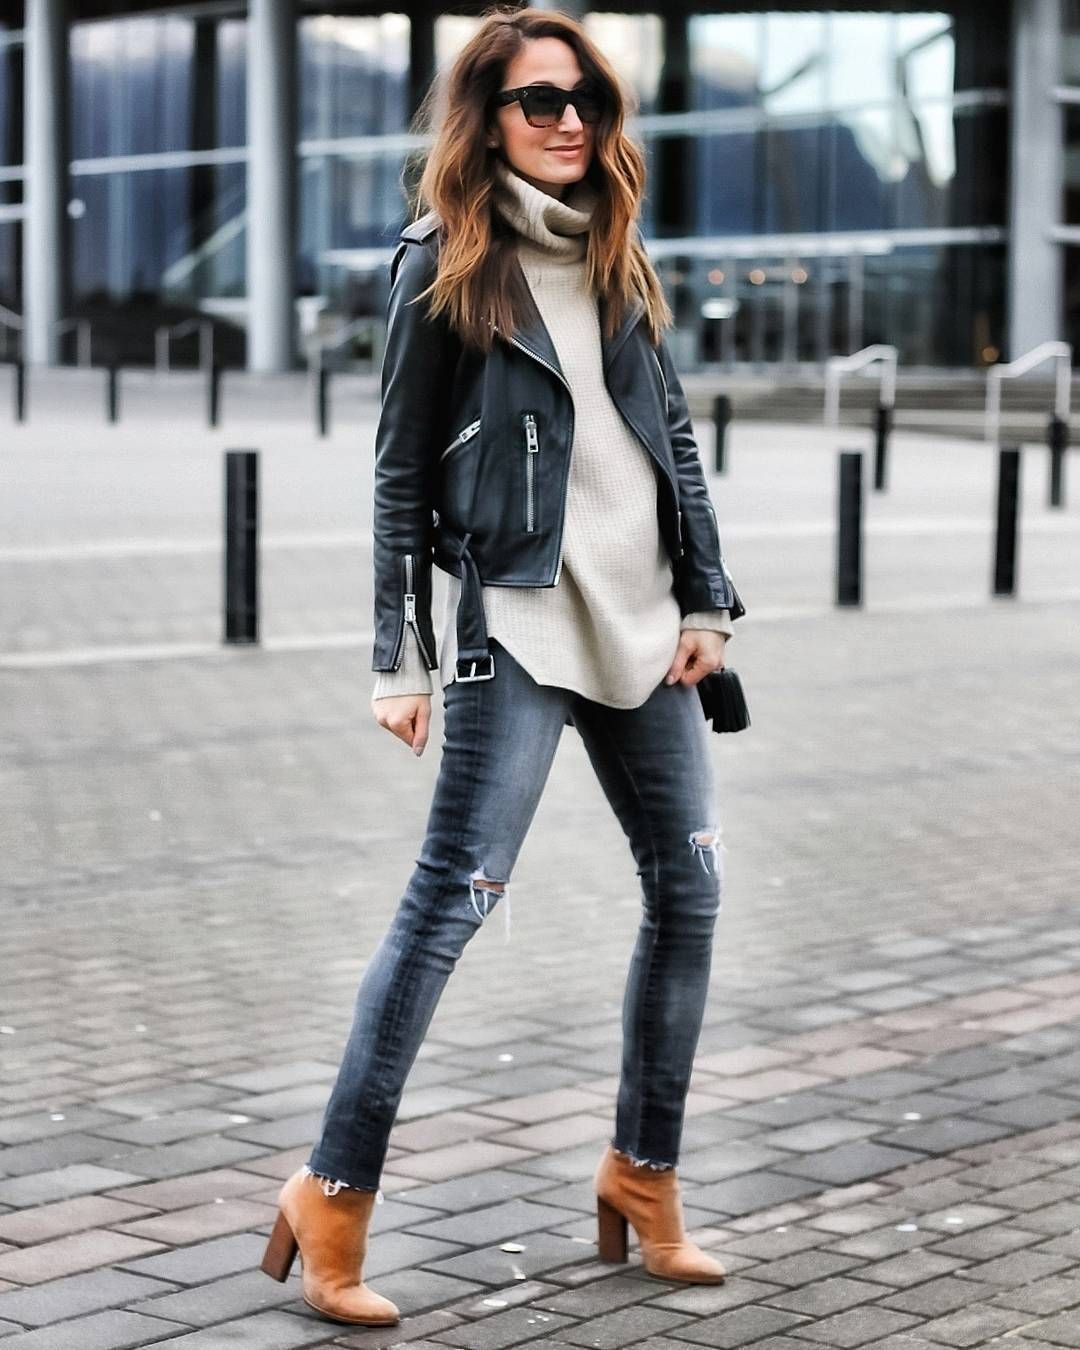 Fashion Clue Street Outfits Trends Leather Jacket Outfits Beige Leather Jacket Outfit Fashion [ 1350 x 1080 Pixel ]